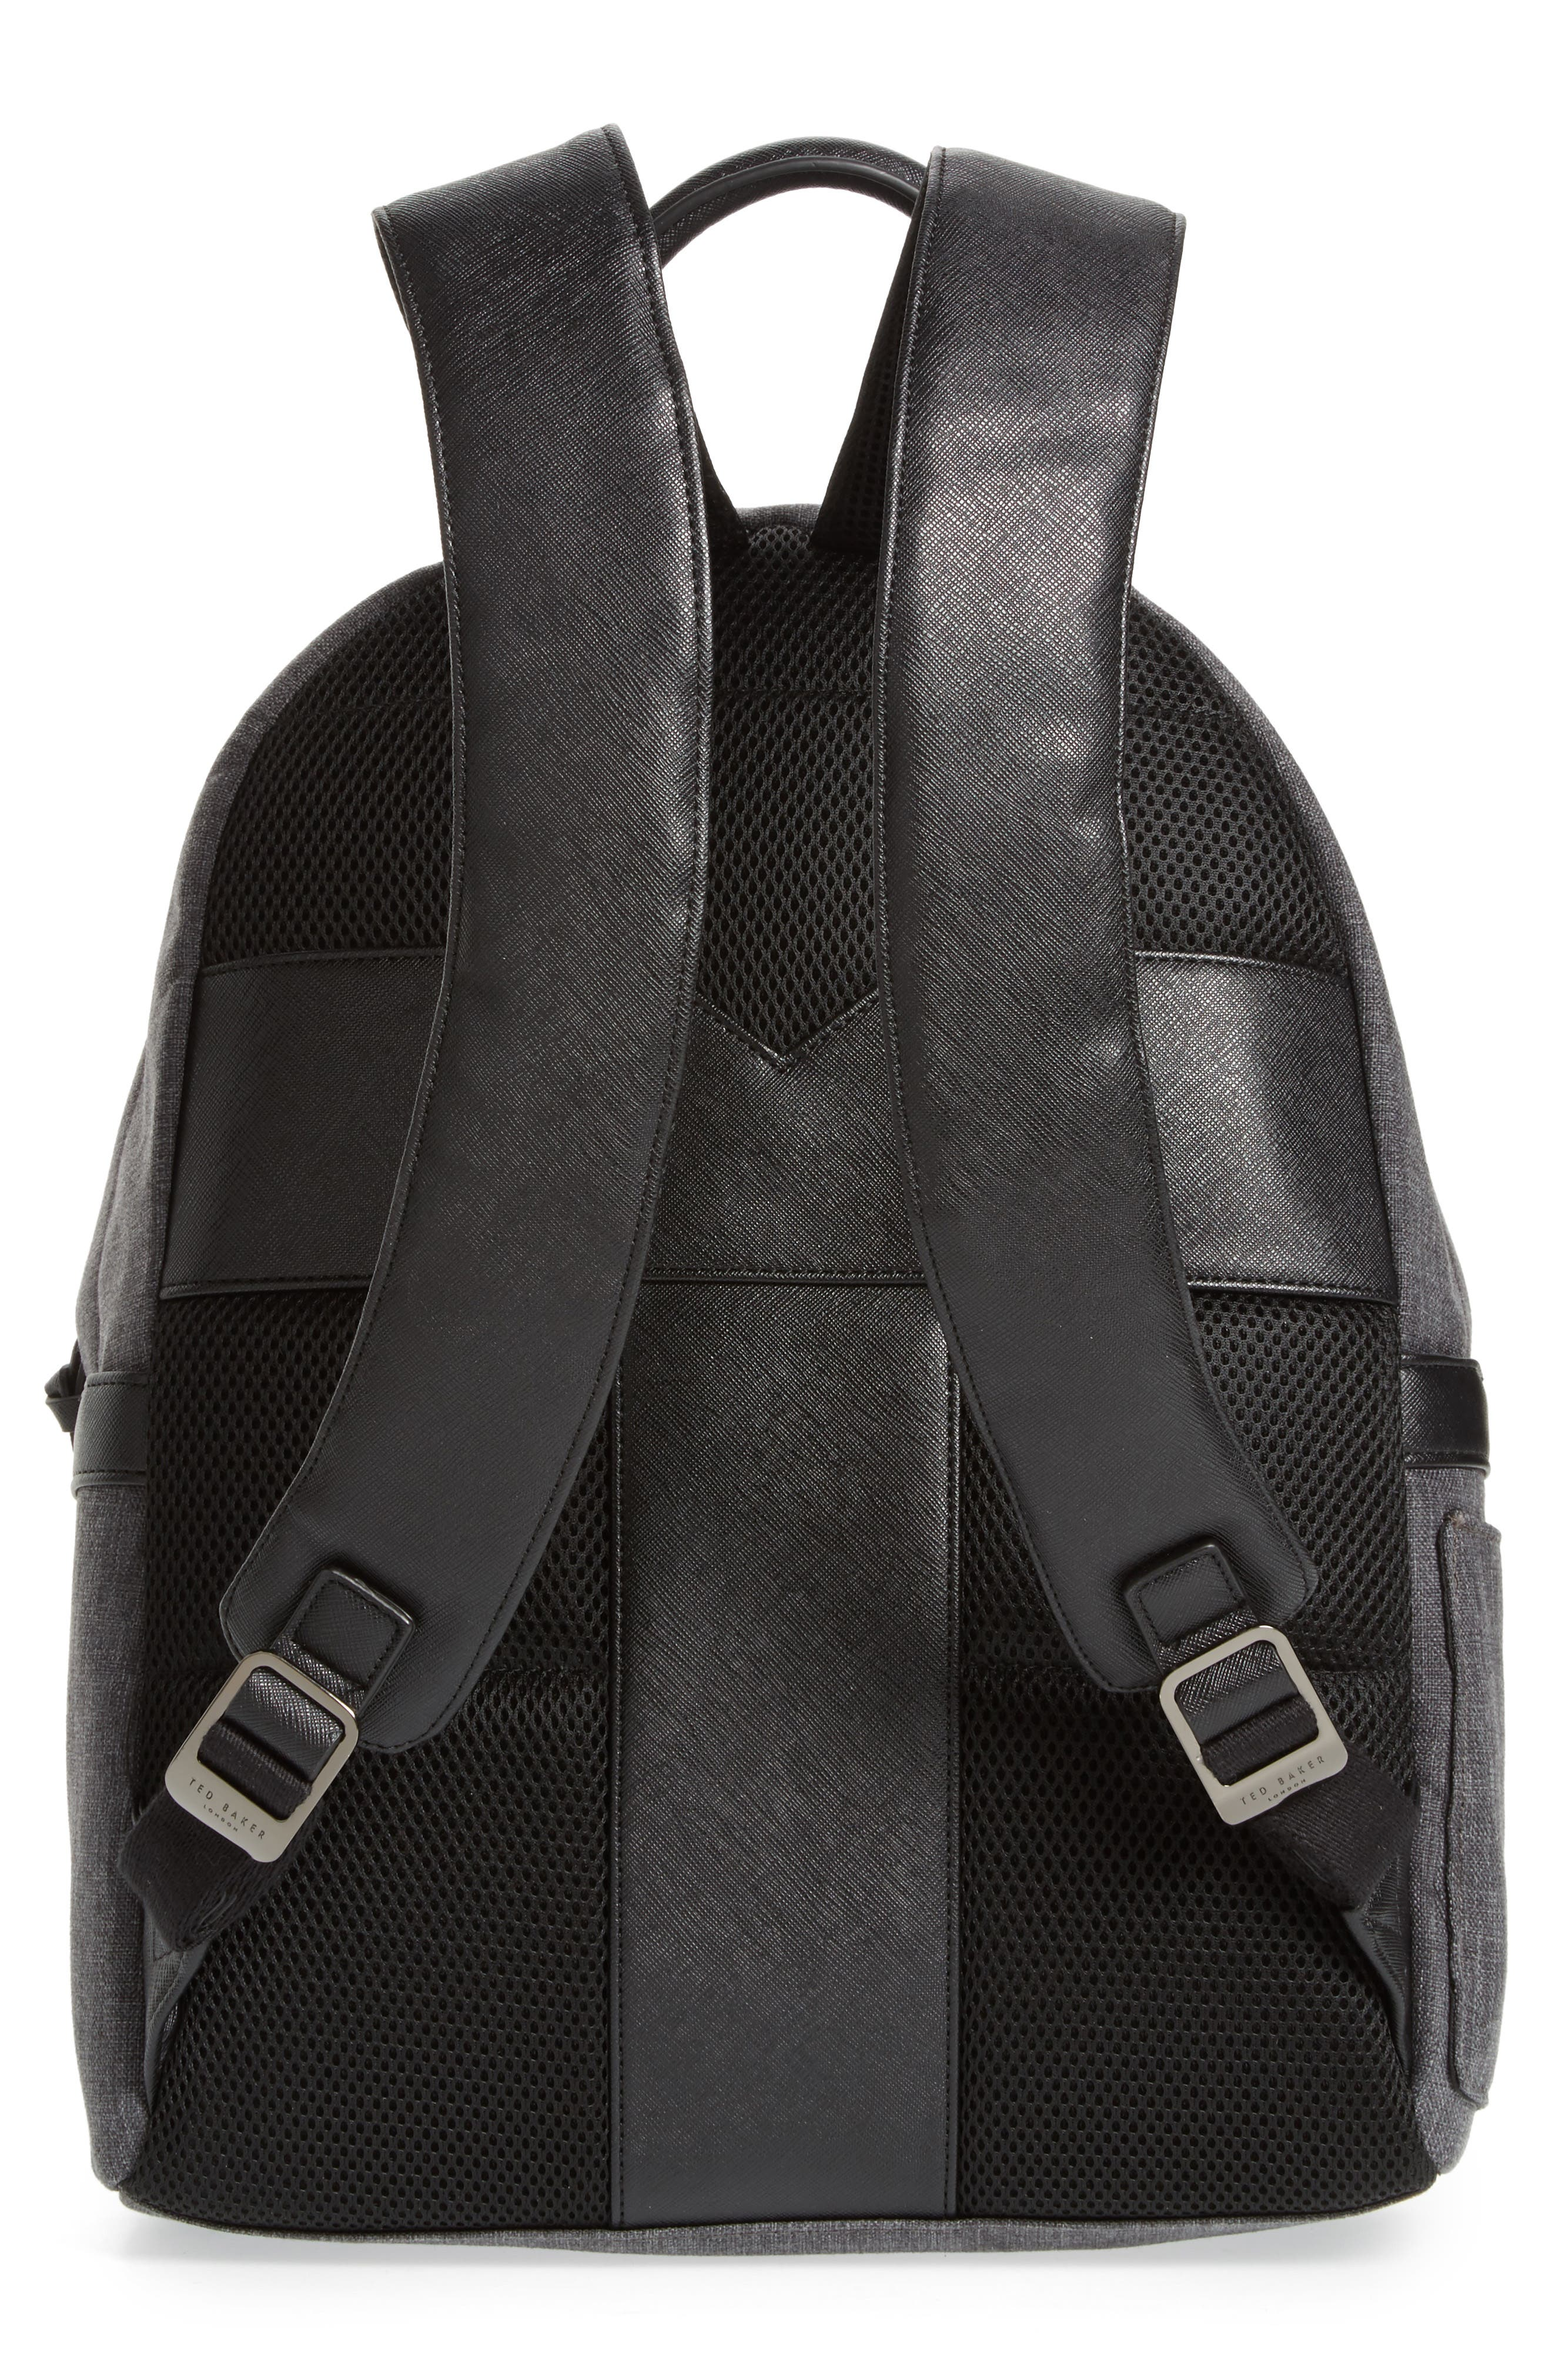 Lychee Backpack,                             Alternate thumbnail 3, color,                             010